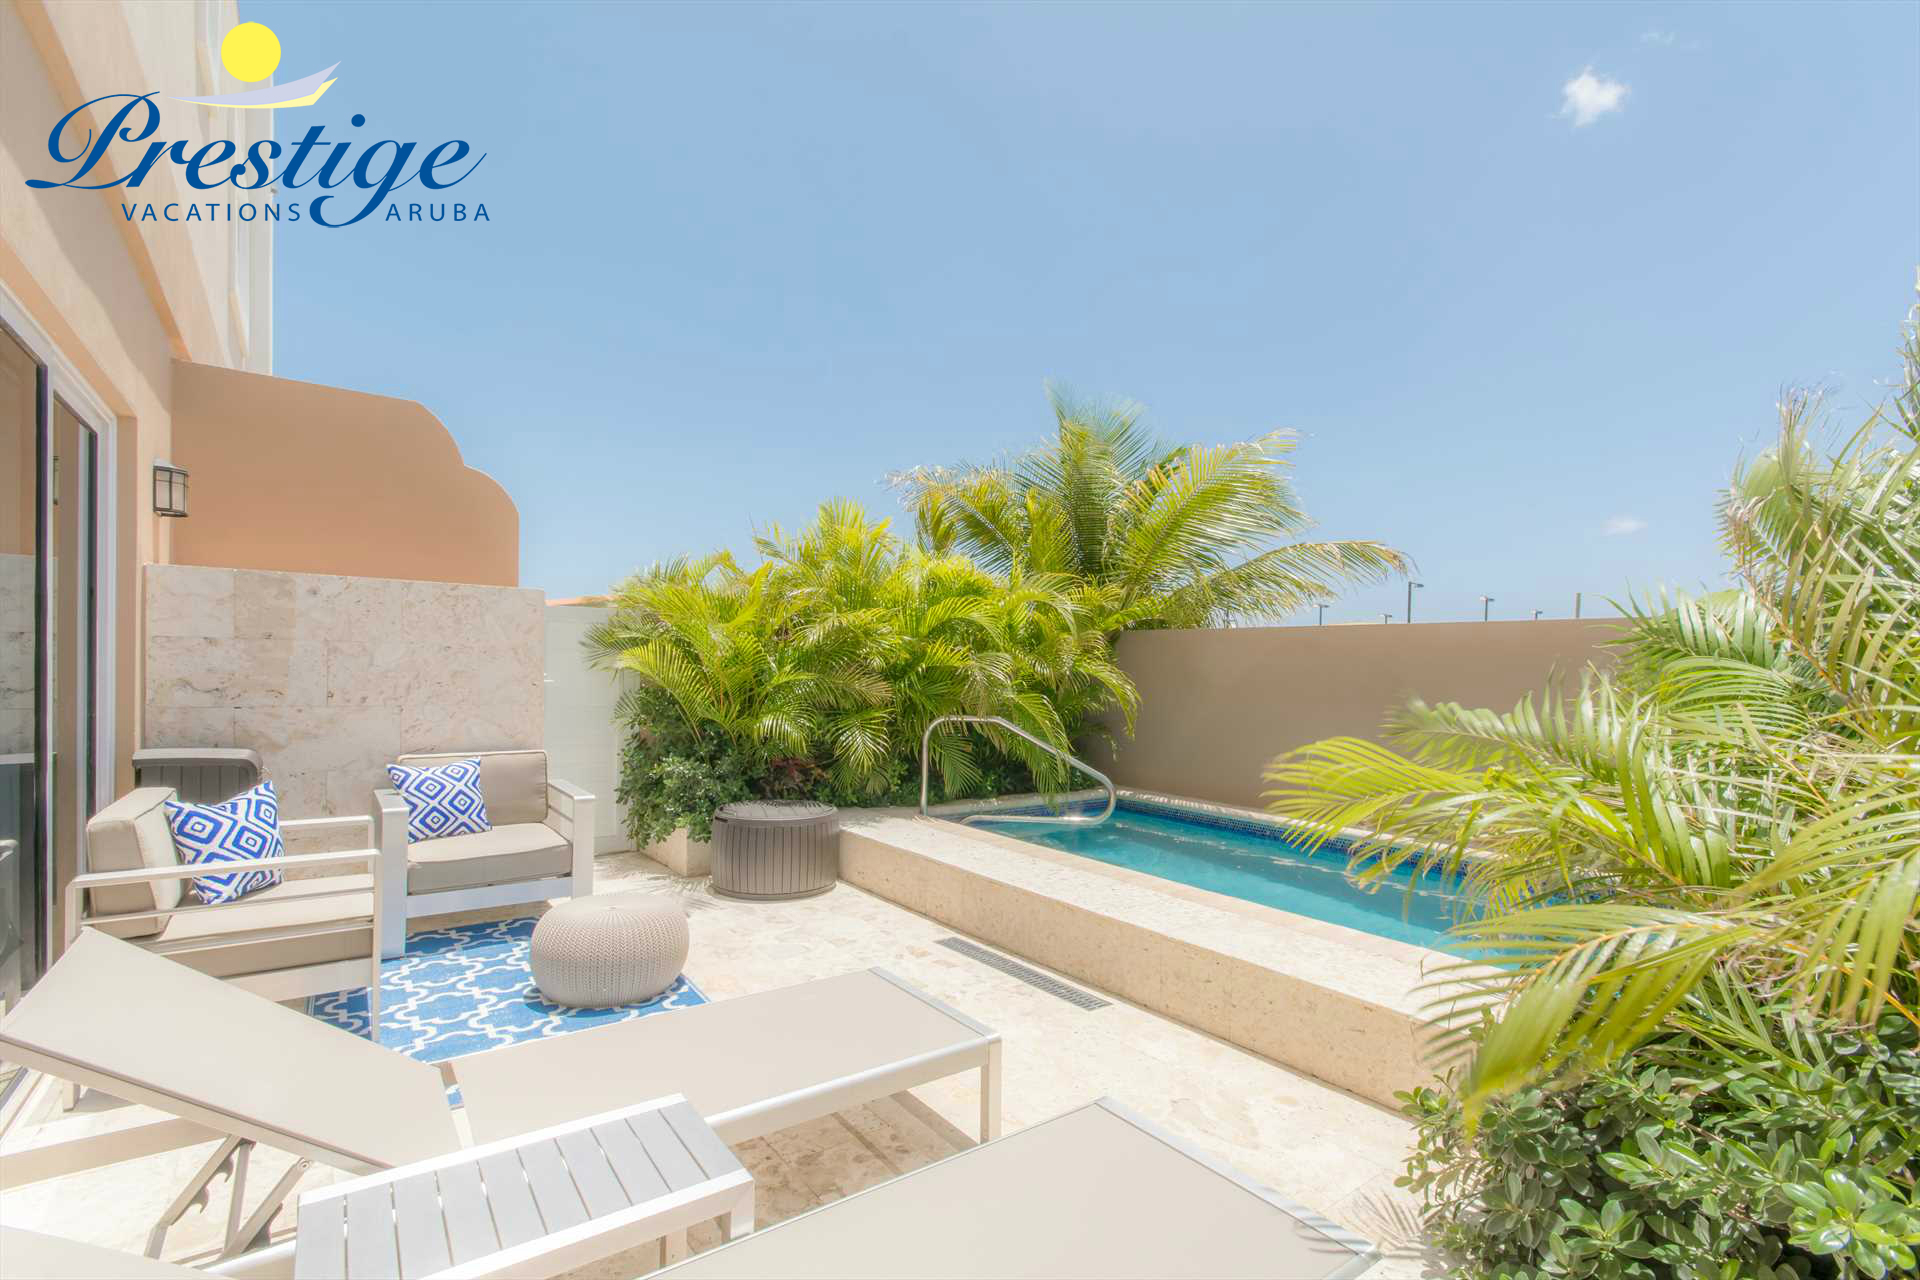 Welcome to your Ipanema Vibes Two-bedroom townhome at LeVent Beach Resort Aruba